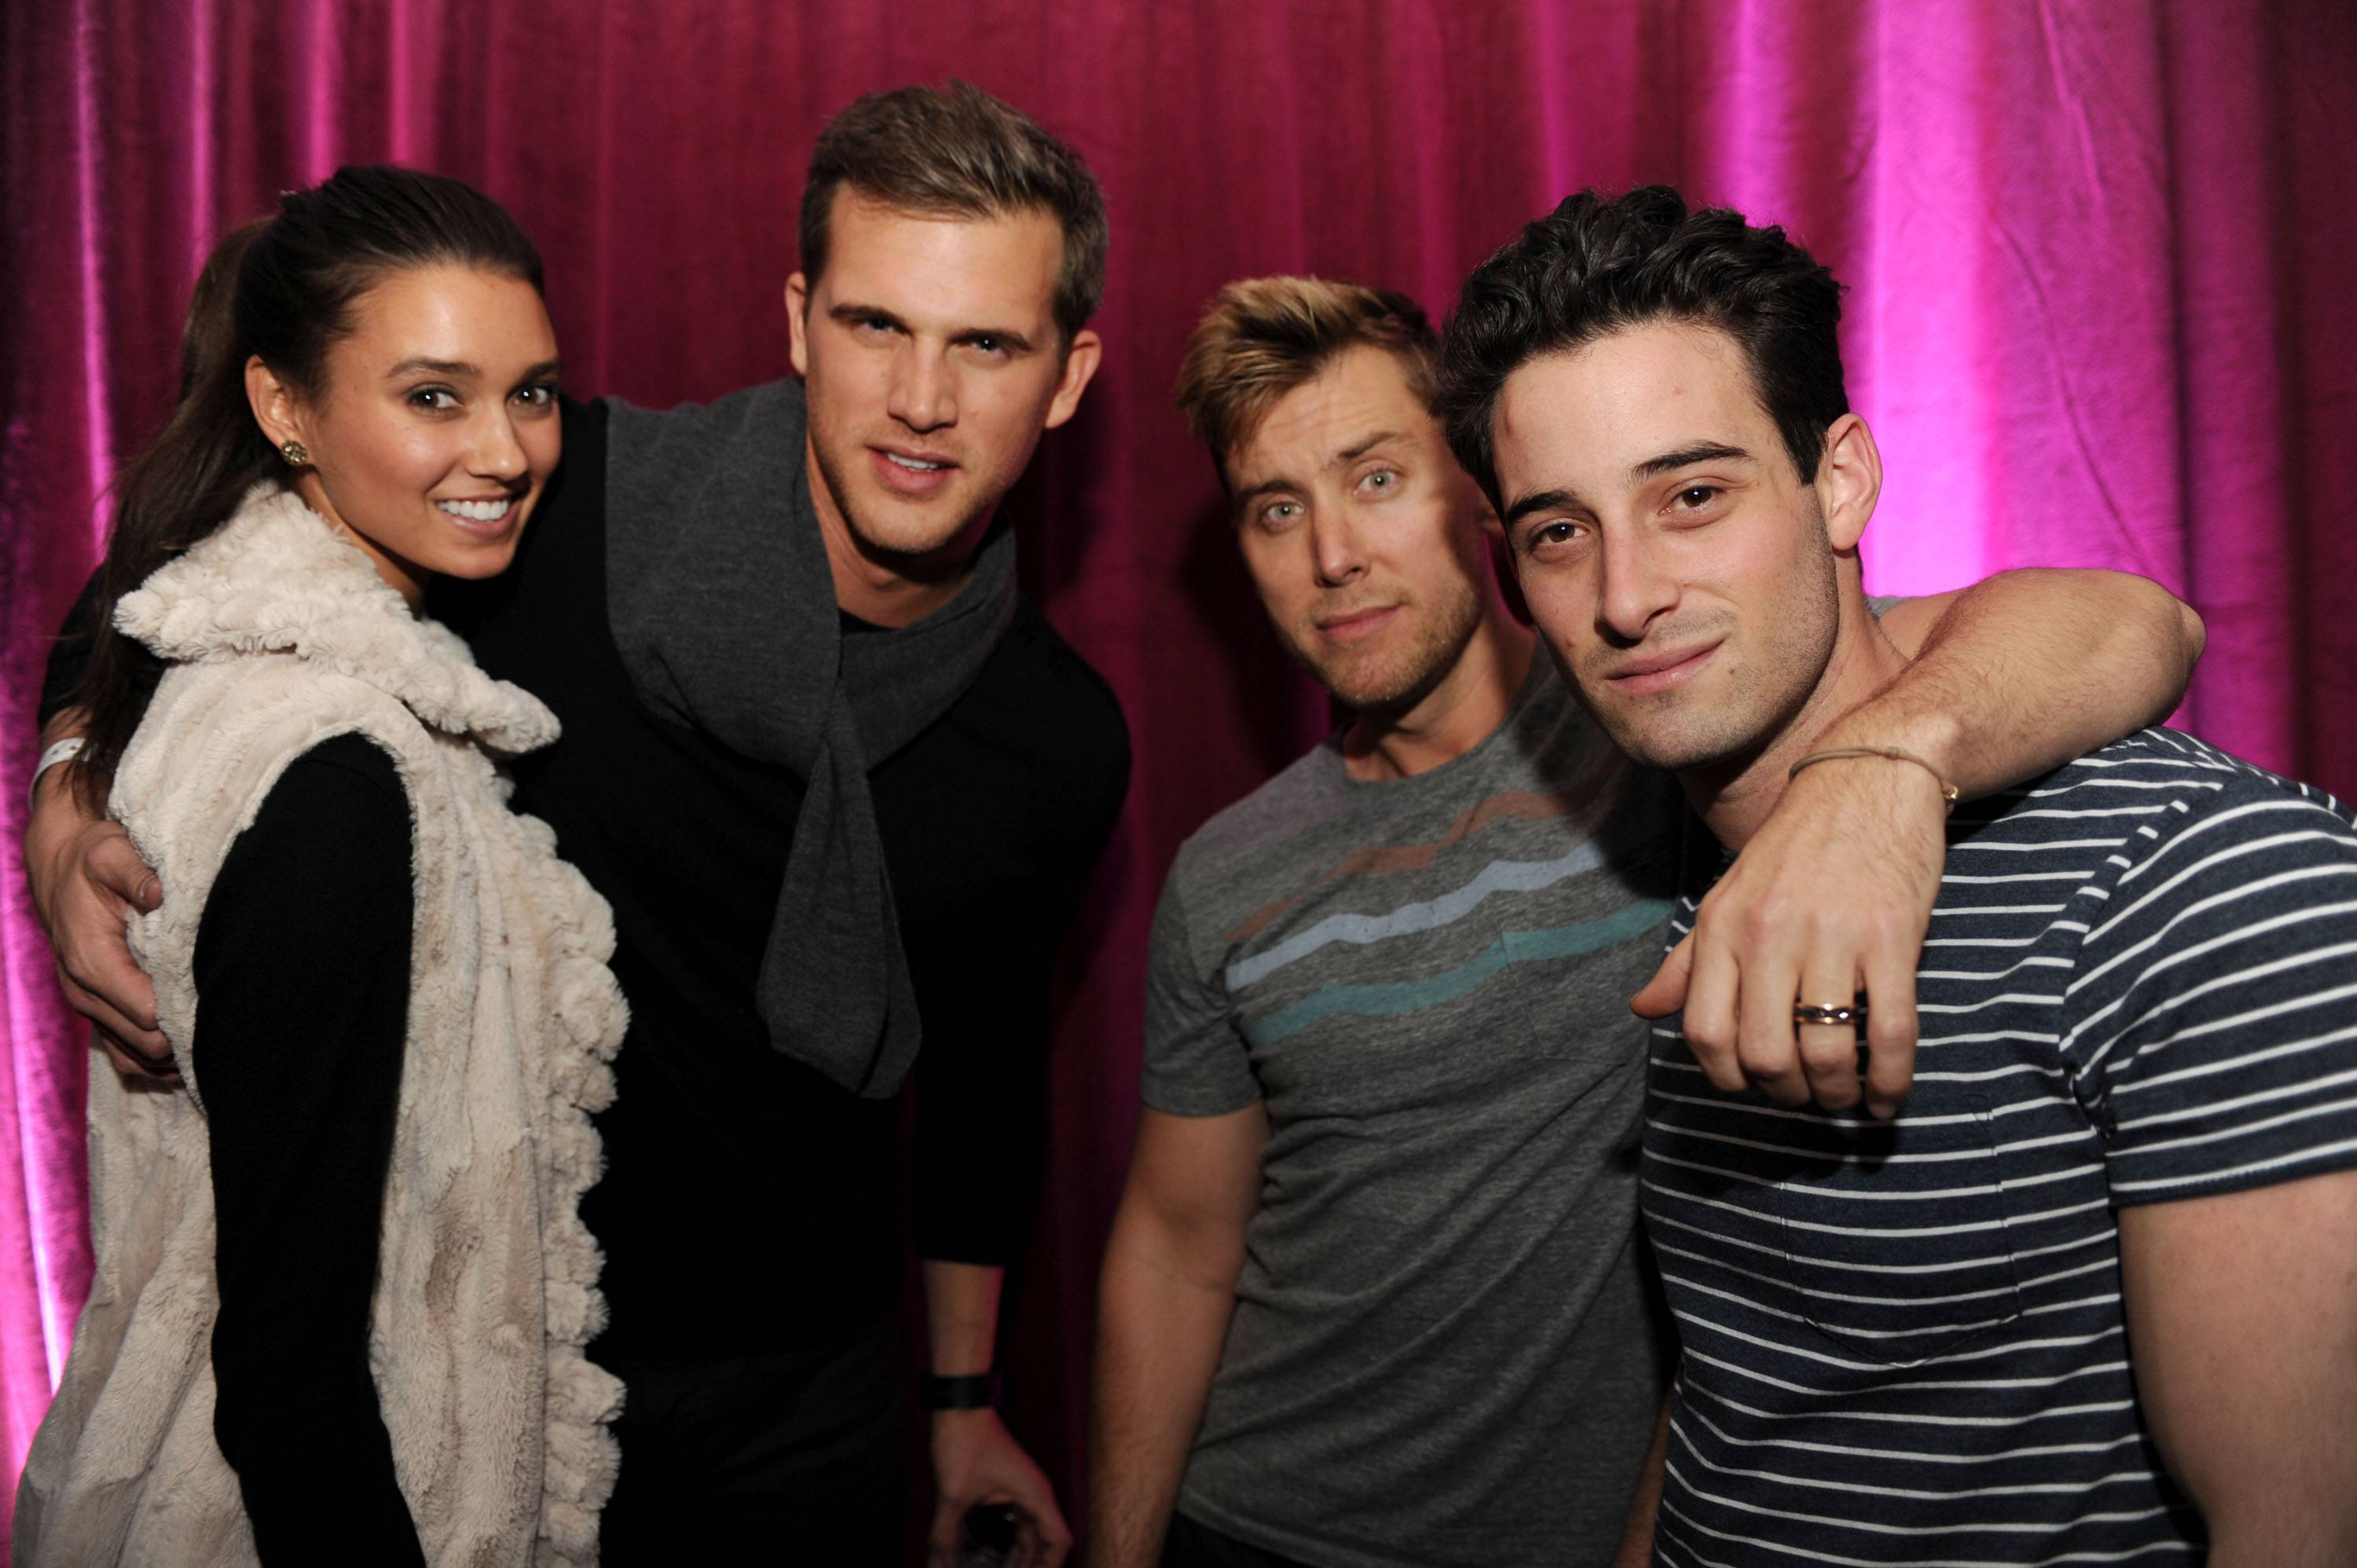 Matt Nordgren, and Lance Bass with Fiance Michael Turchin at TAO at Village at the Lift with Moet & Chandon and Stella Artois